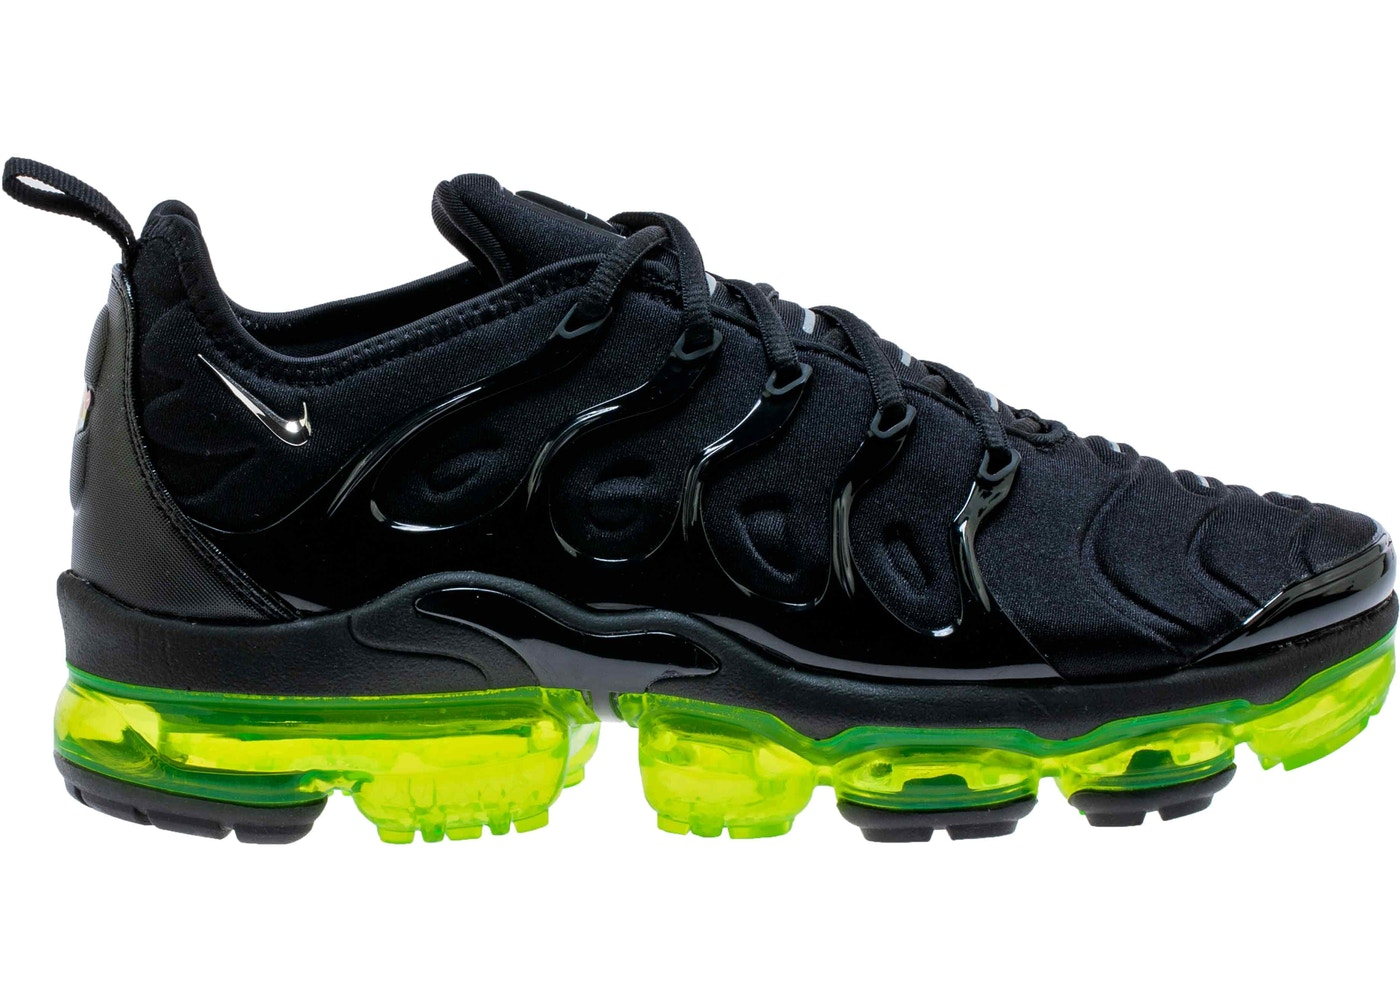 sports shoes 8d065 618bd Buy Air Max VaporMax Shoes   Deadstock Sneakers